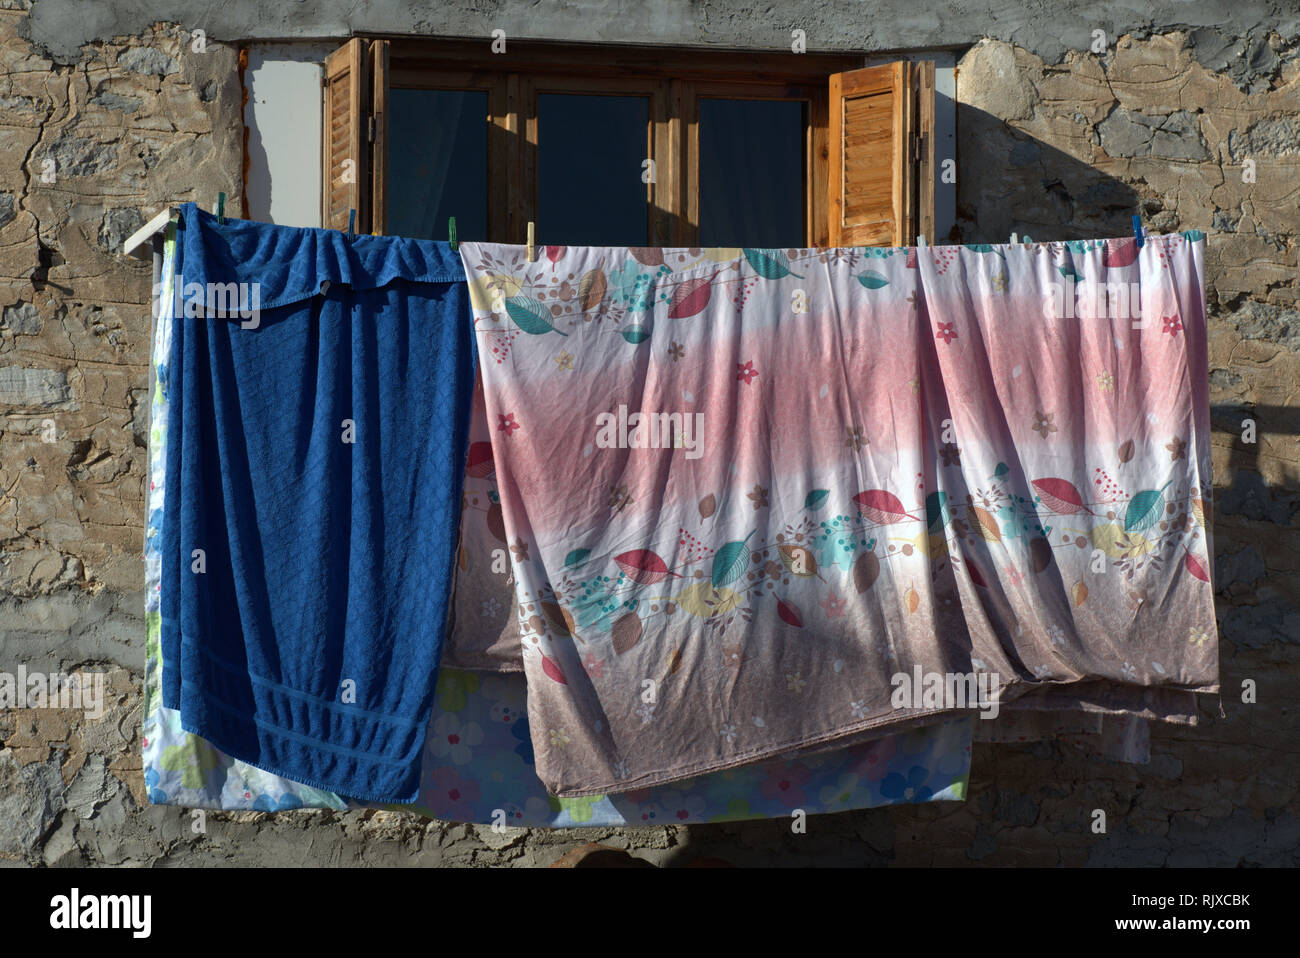 Washing hanging out to dry outside a wooden in window in the city of Kastoria, Greece. - Stock Image